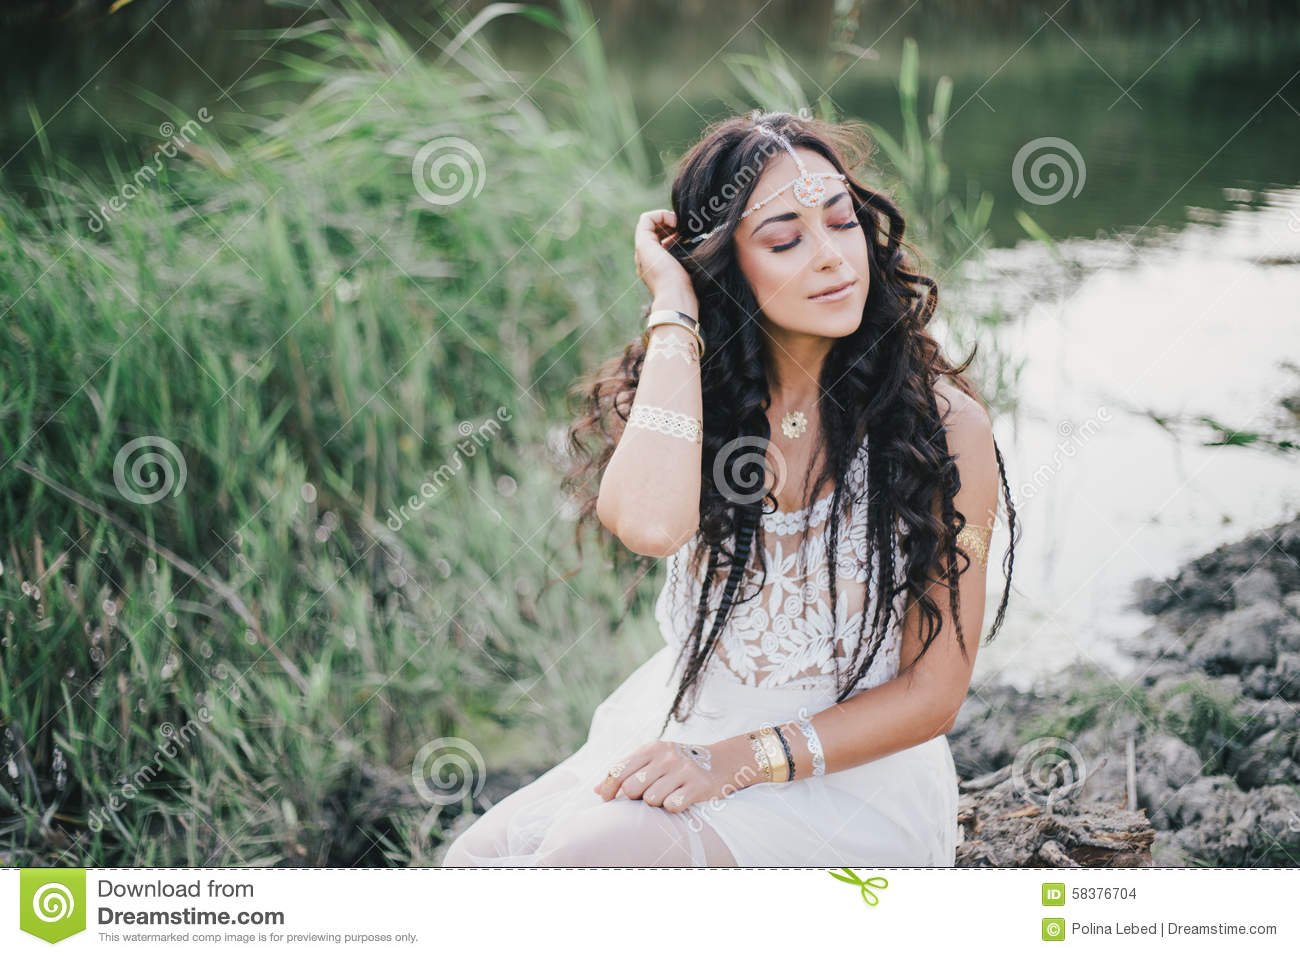 Bohemian Style Hair: Beautiful Woman With Long Curly Hair Dressed In Boho Style